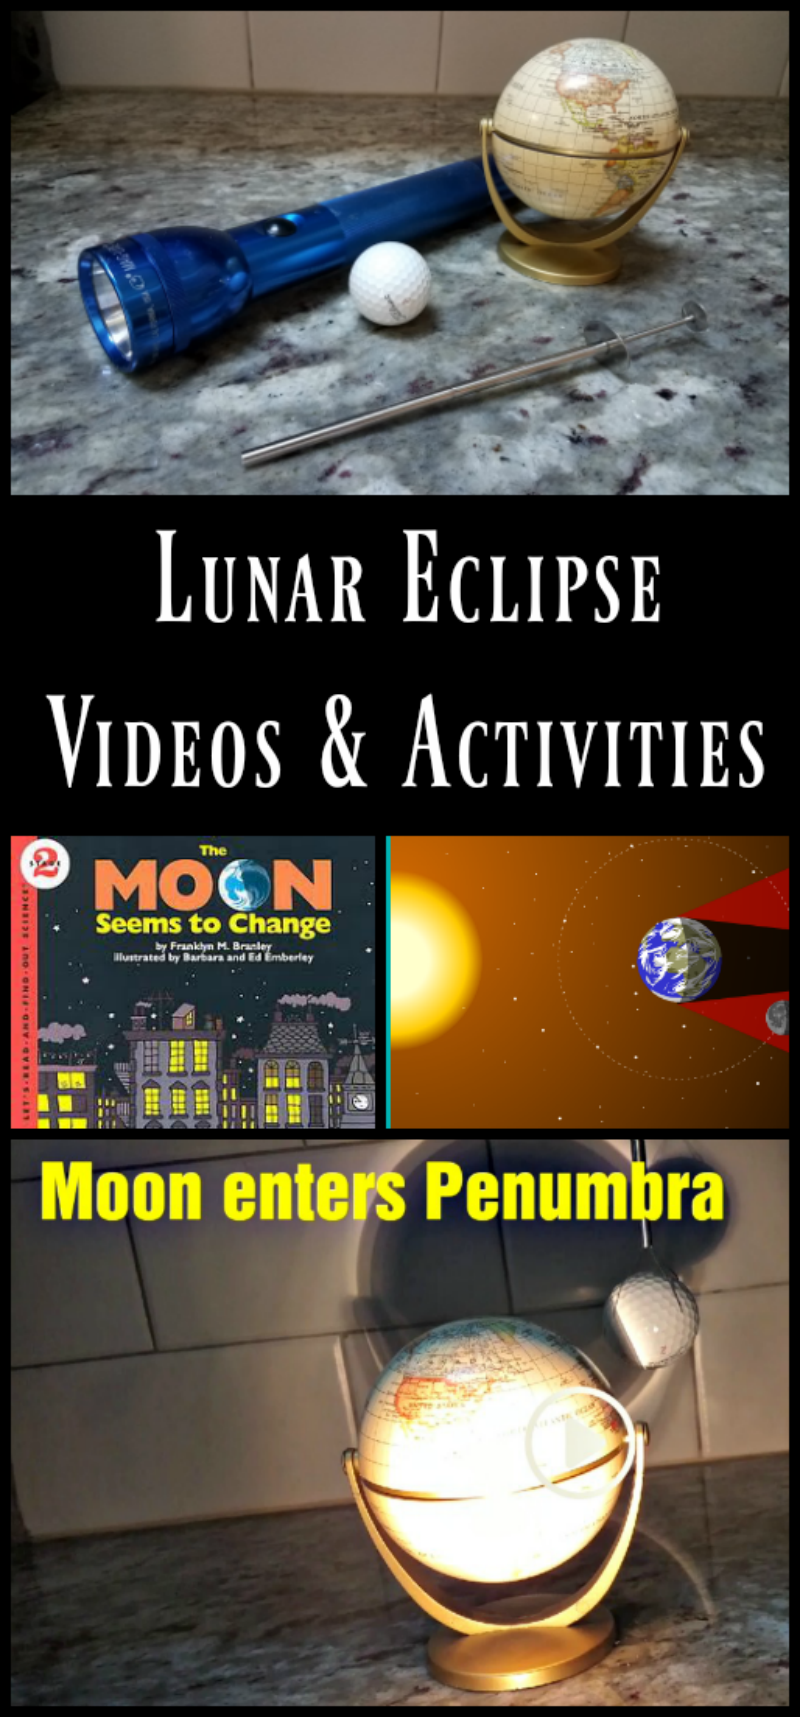 Lunar eclipse activities for kids - use with the January 2019 total lunar eclipse!